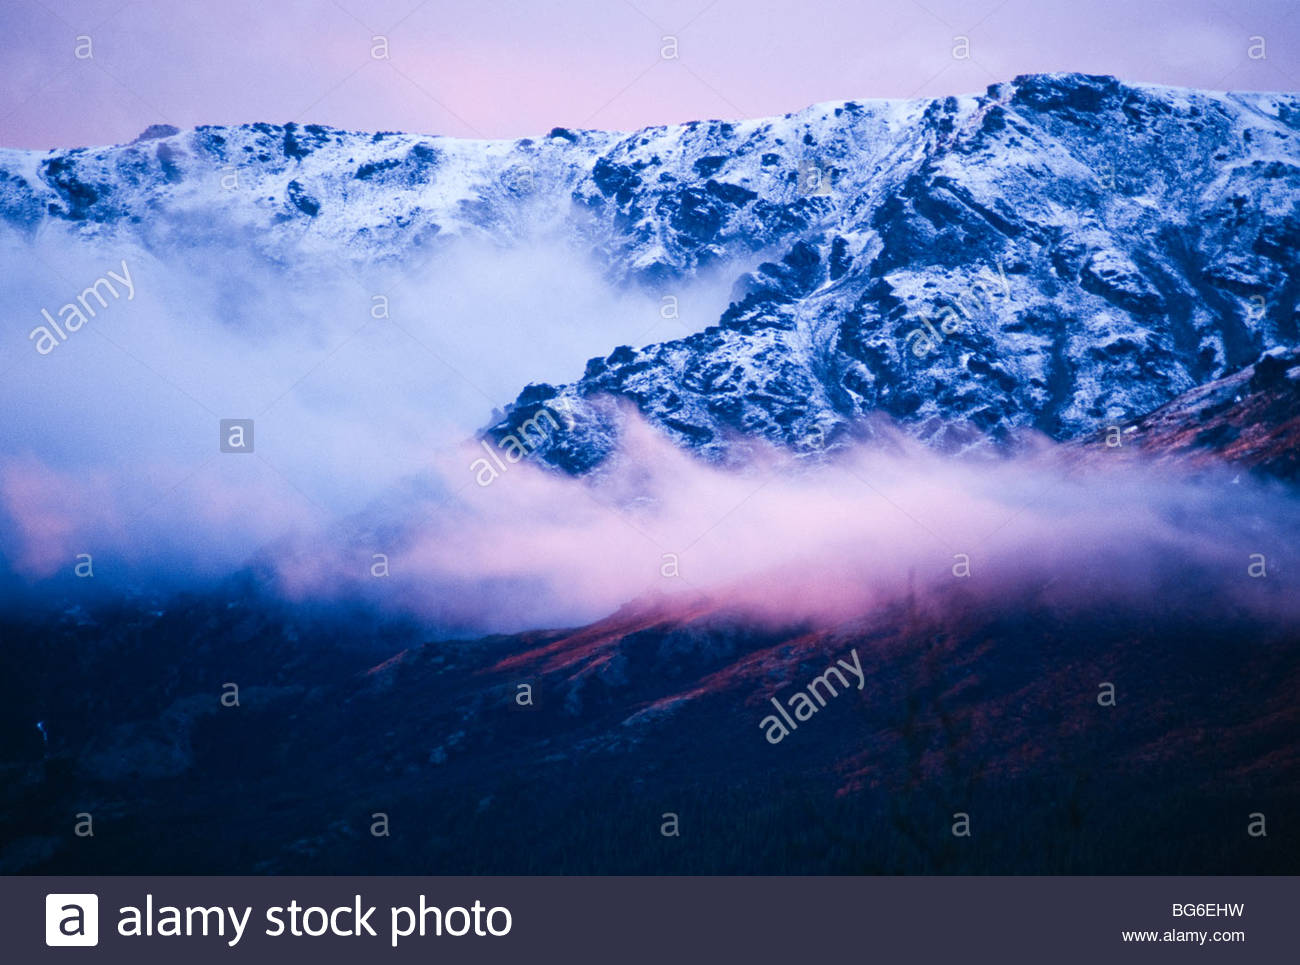 Alaska. Denali NP. Sunset on the foothills of the Alaska Range. - Stock Image